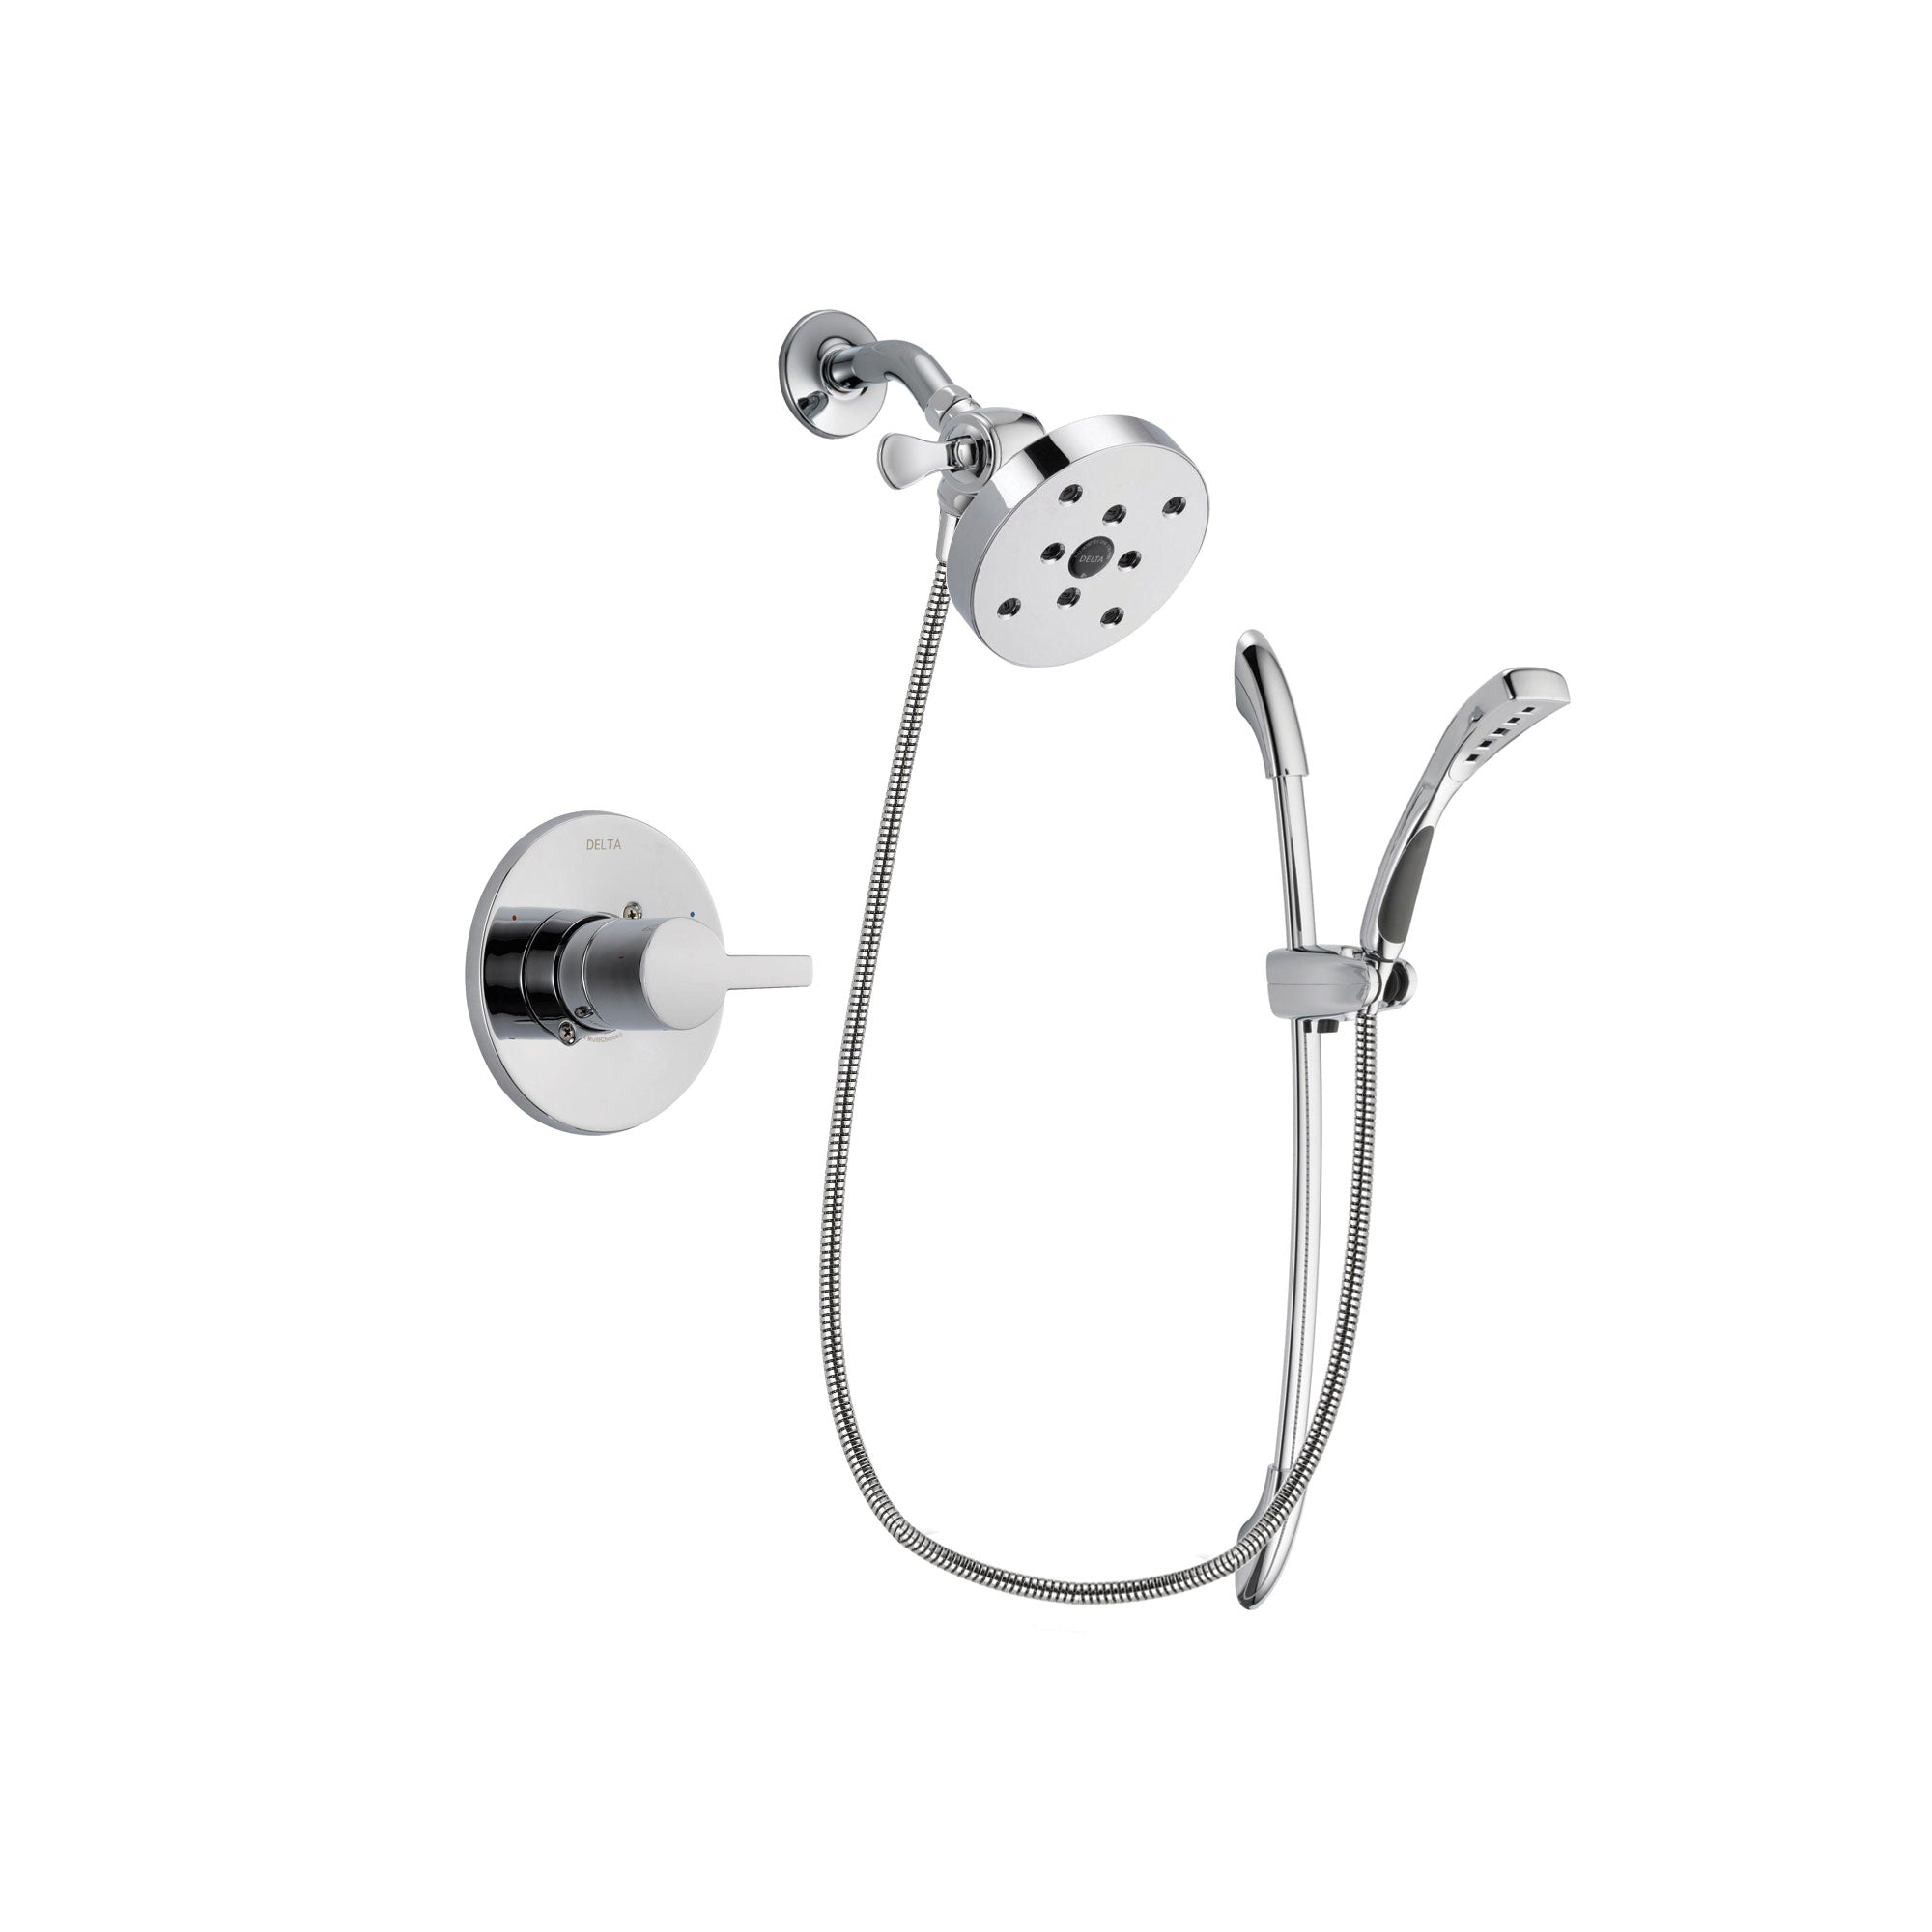 Delta Compel Chrome Finish Shower Faucet System Package with 5-1/2 inch Shower Head and Handheld Shower with Slide Bar Includes Rough-in Valve DSP0542V